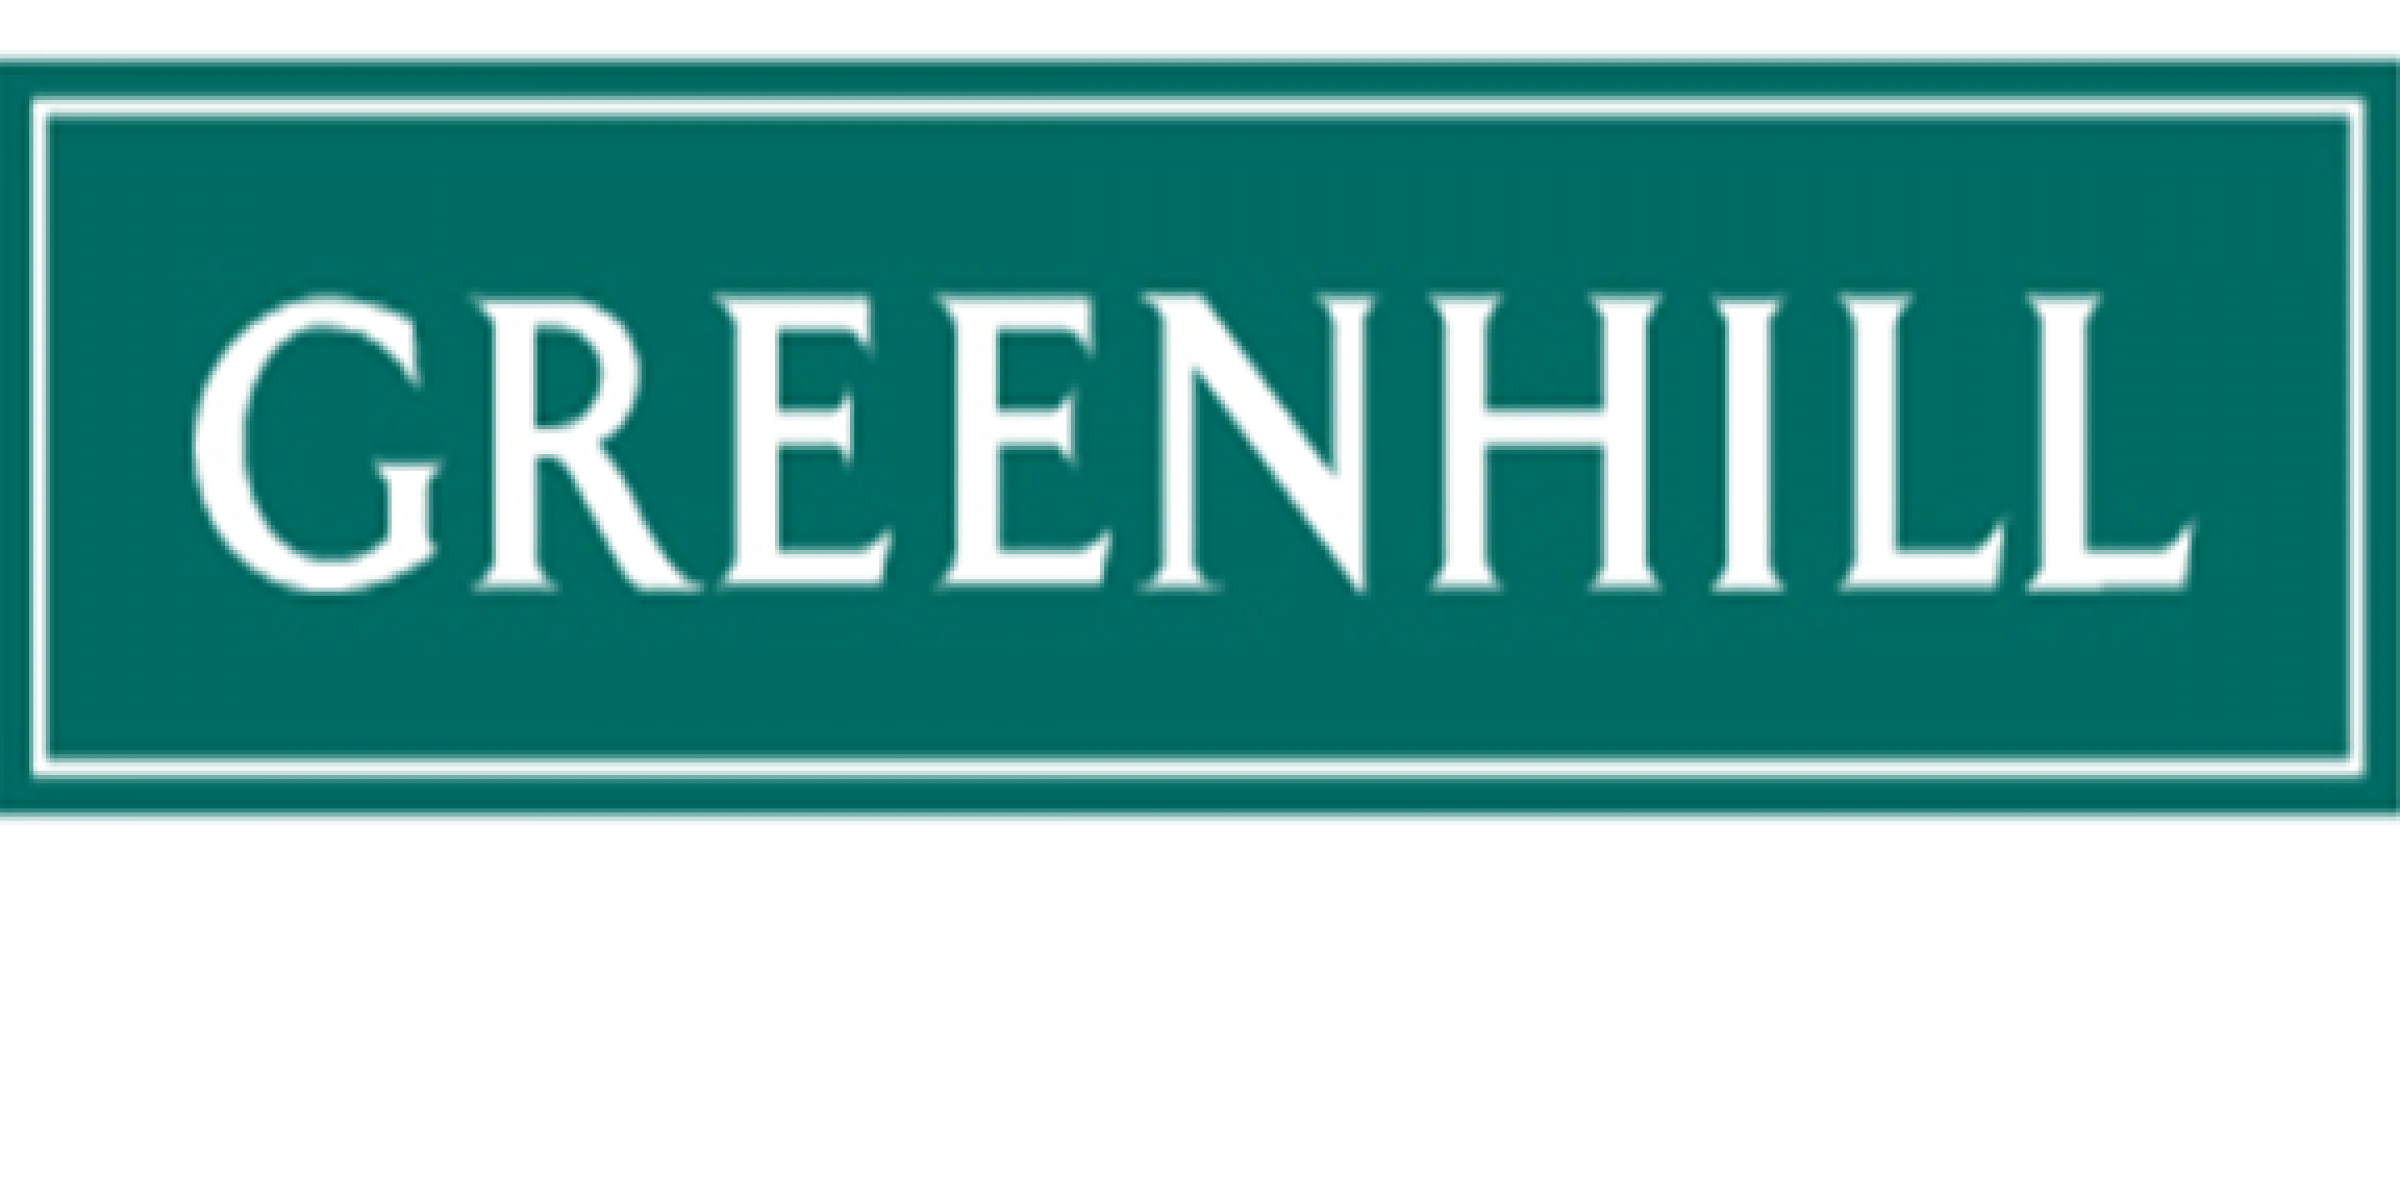 logo-greenhill-co-hof-nyc-larger